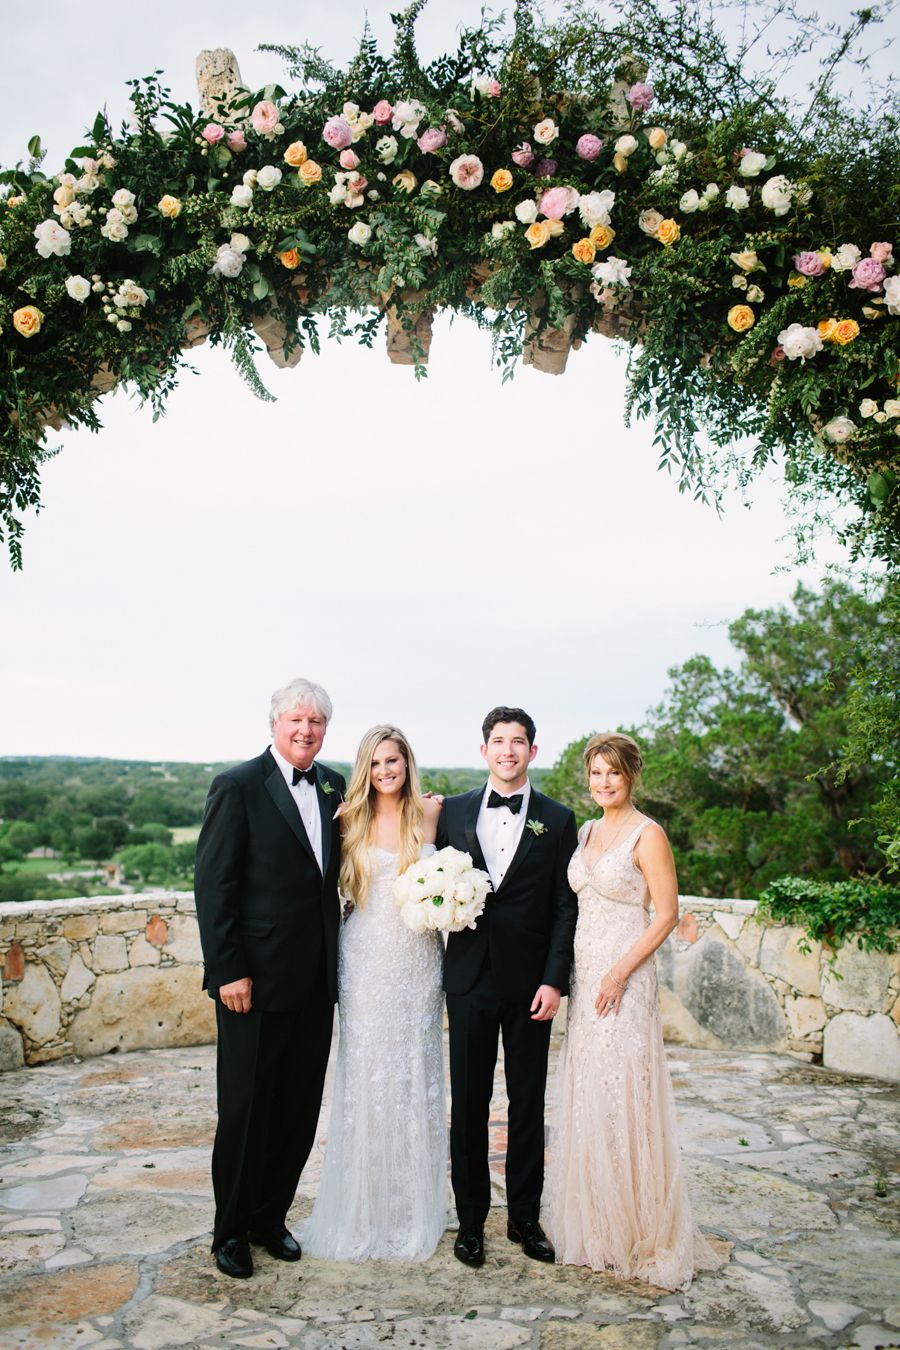 Mexican style wedding dress  Southwestern Style Wedding in Dripping Springs Texas  Vaulting and